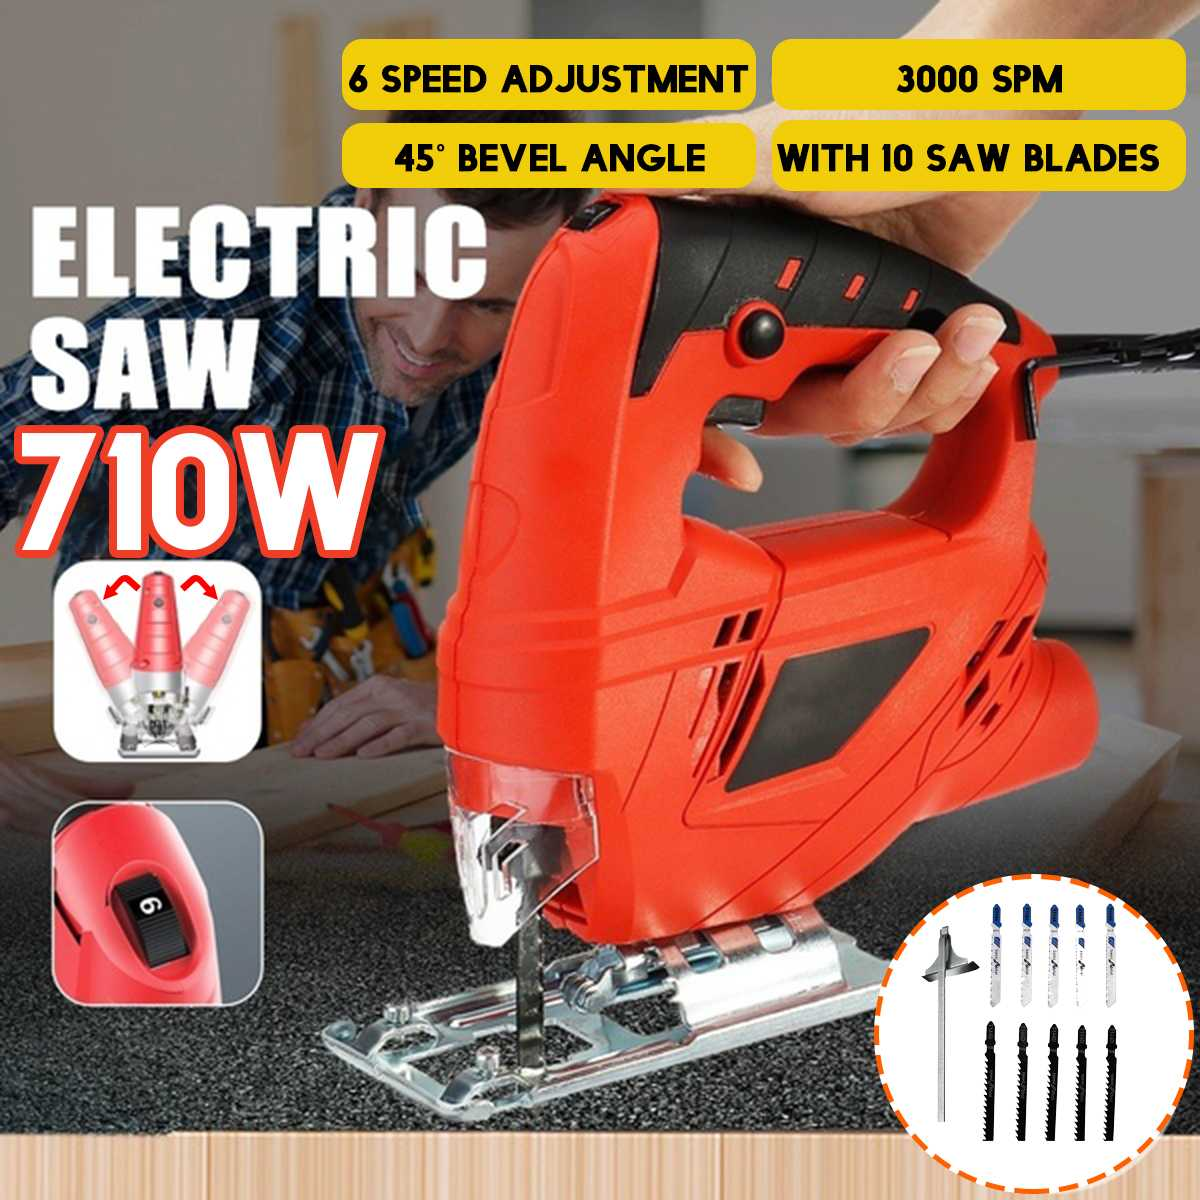 710W Jig Saw 6 Variable Speed Electric Saw With 10 Pieces Blade~ Multifunctional Jigsaw Electric Saws for Woodworking Power Tool